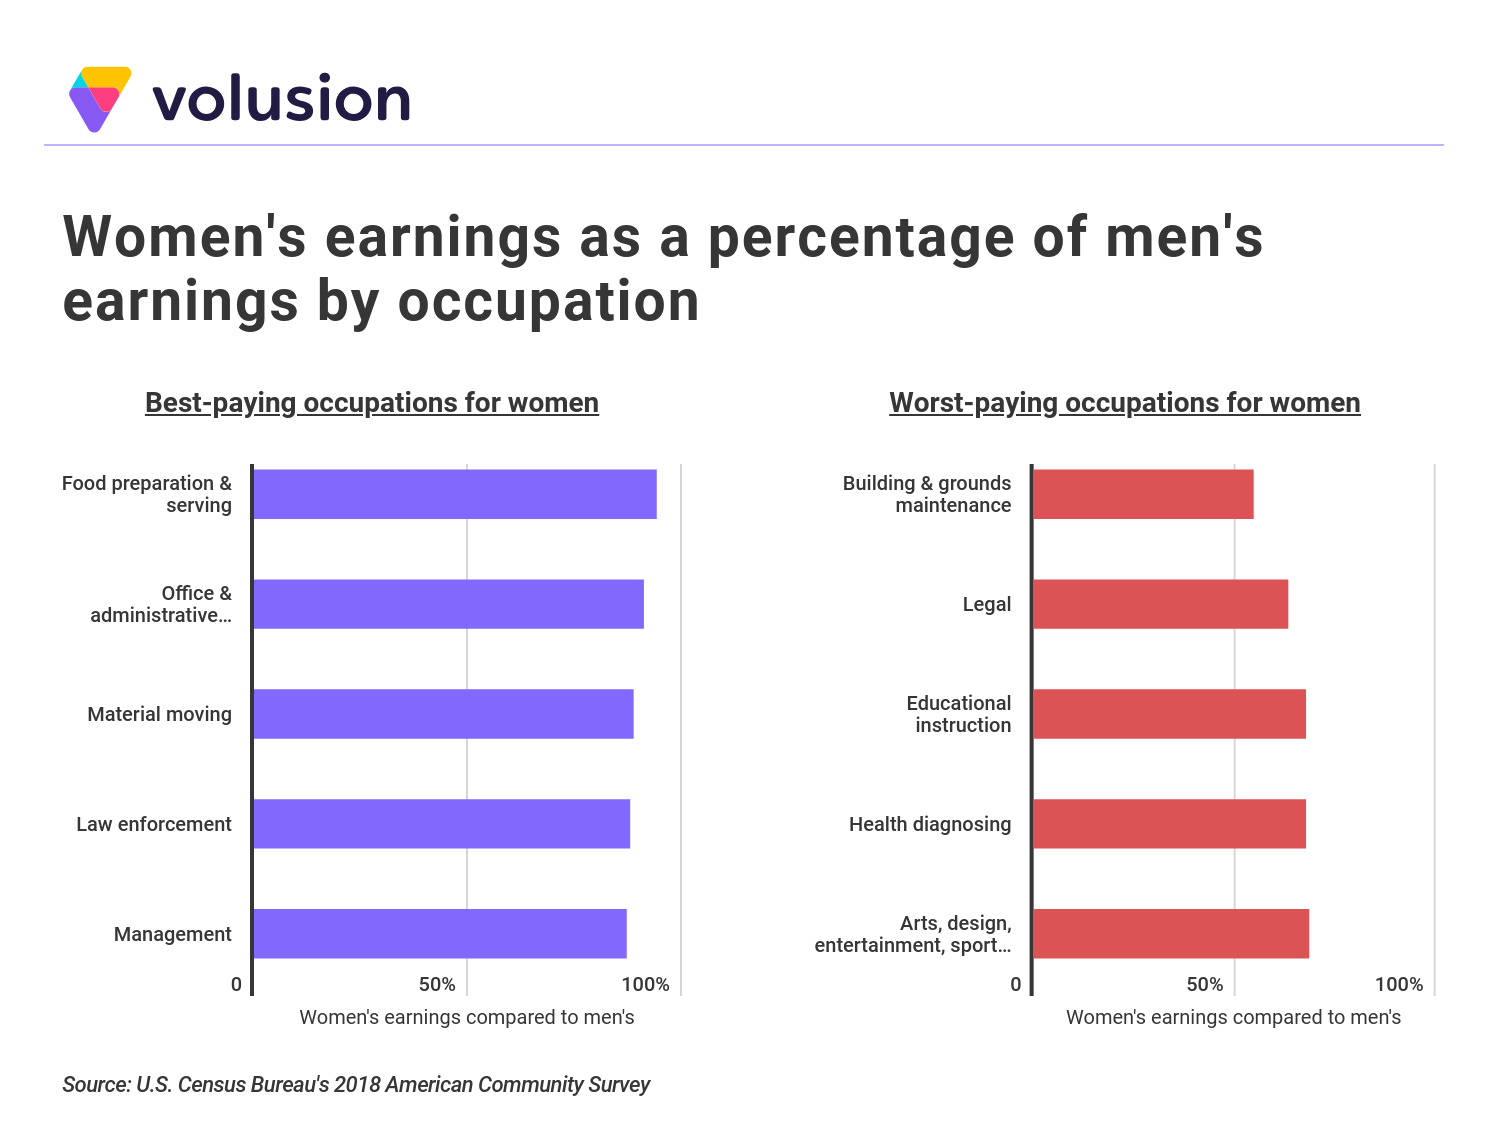 Comparative bar graphs showing women's wearnings as a percentage of men's earnings by occupation - best and worst-paying occupations